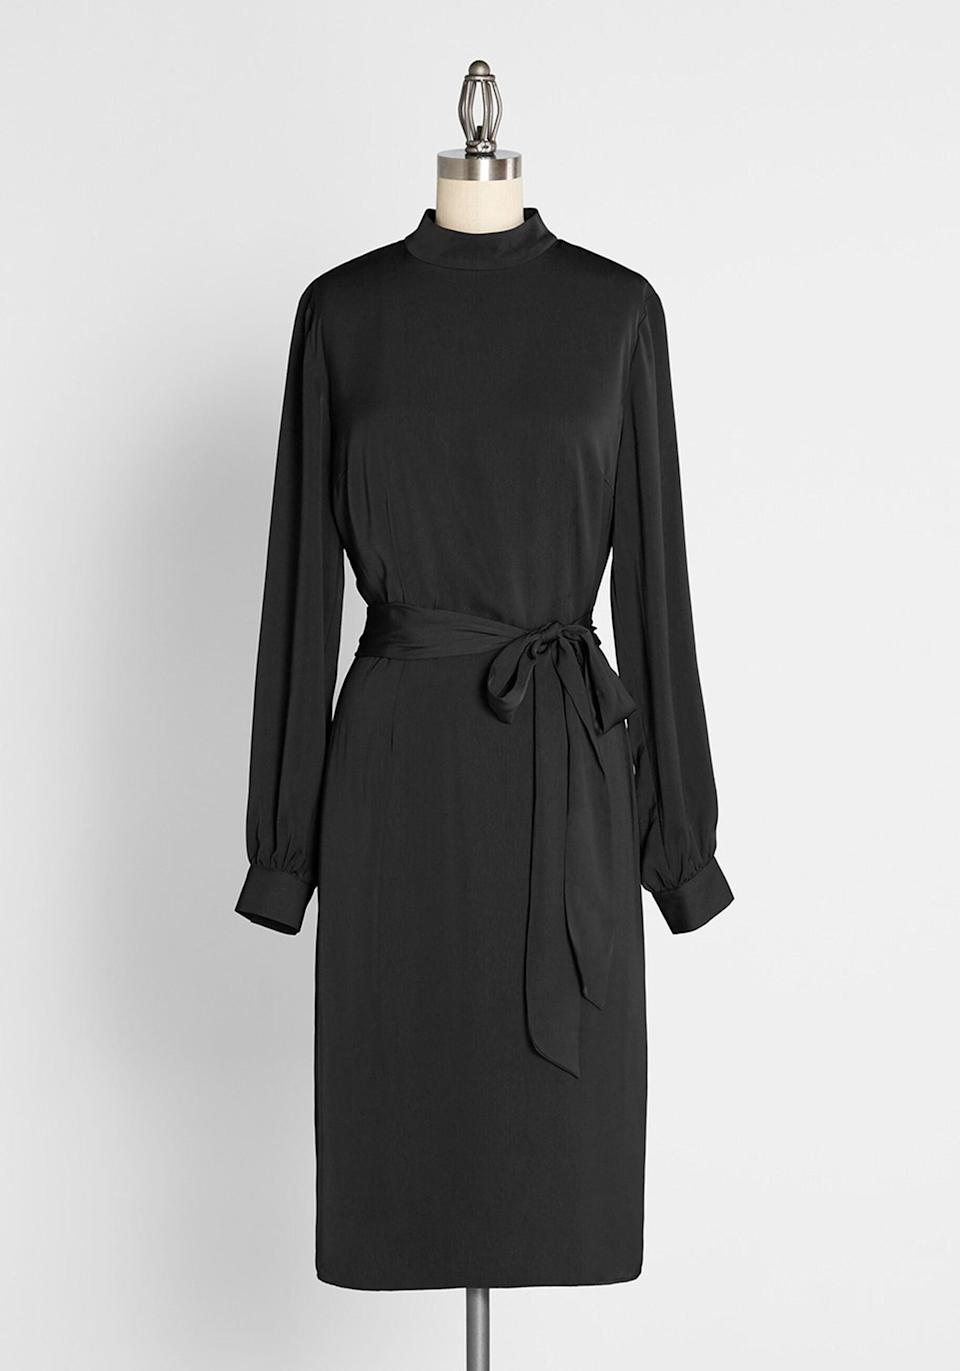 <p>The <span>Final Dynasty Midi Dress</span> ($89) is a great option if you're looking for an elegant staple piece.</p>